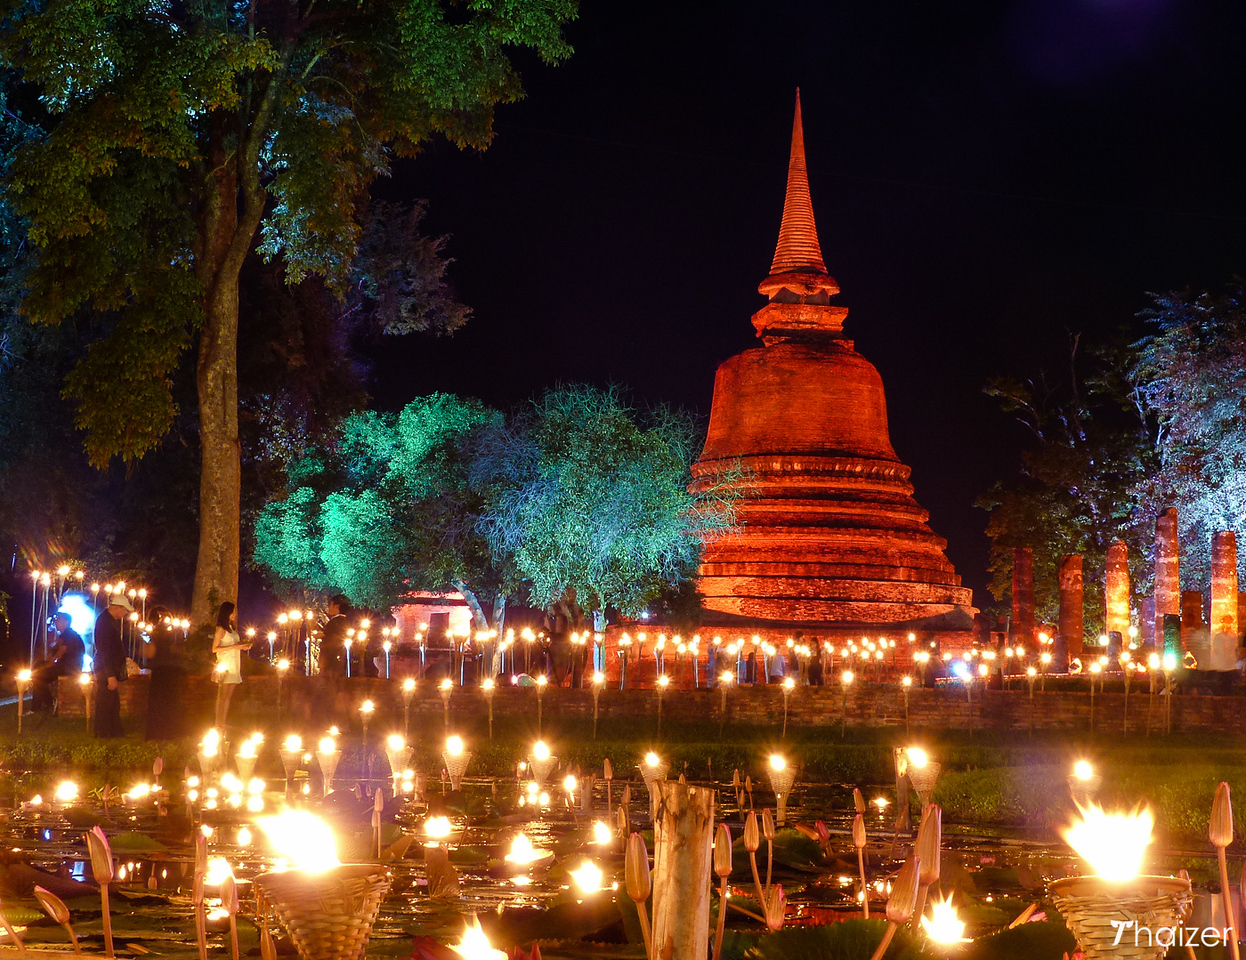 lights and chedi during Loy Krathong at Sukhothai Historical Park